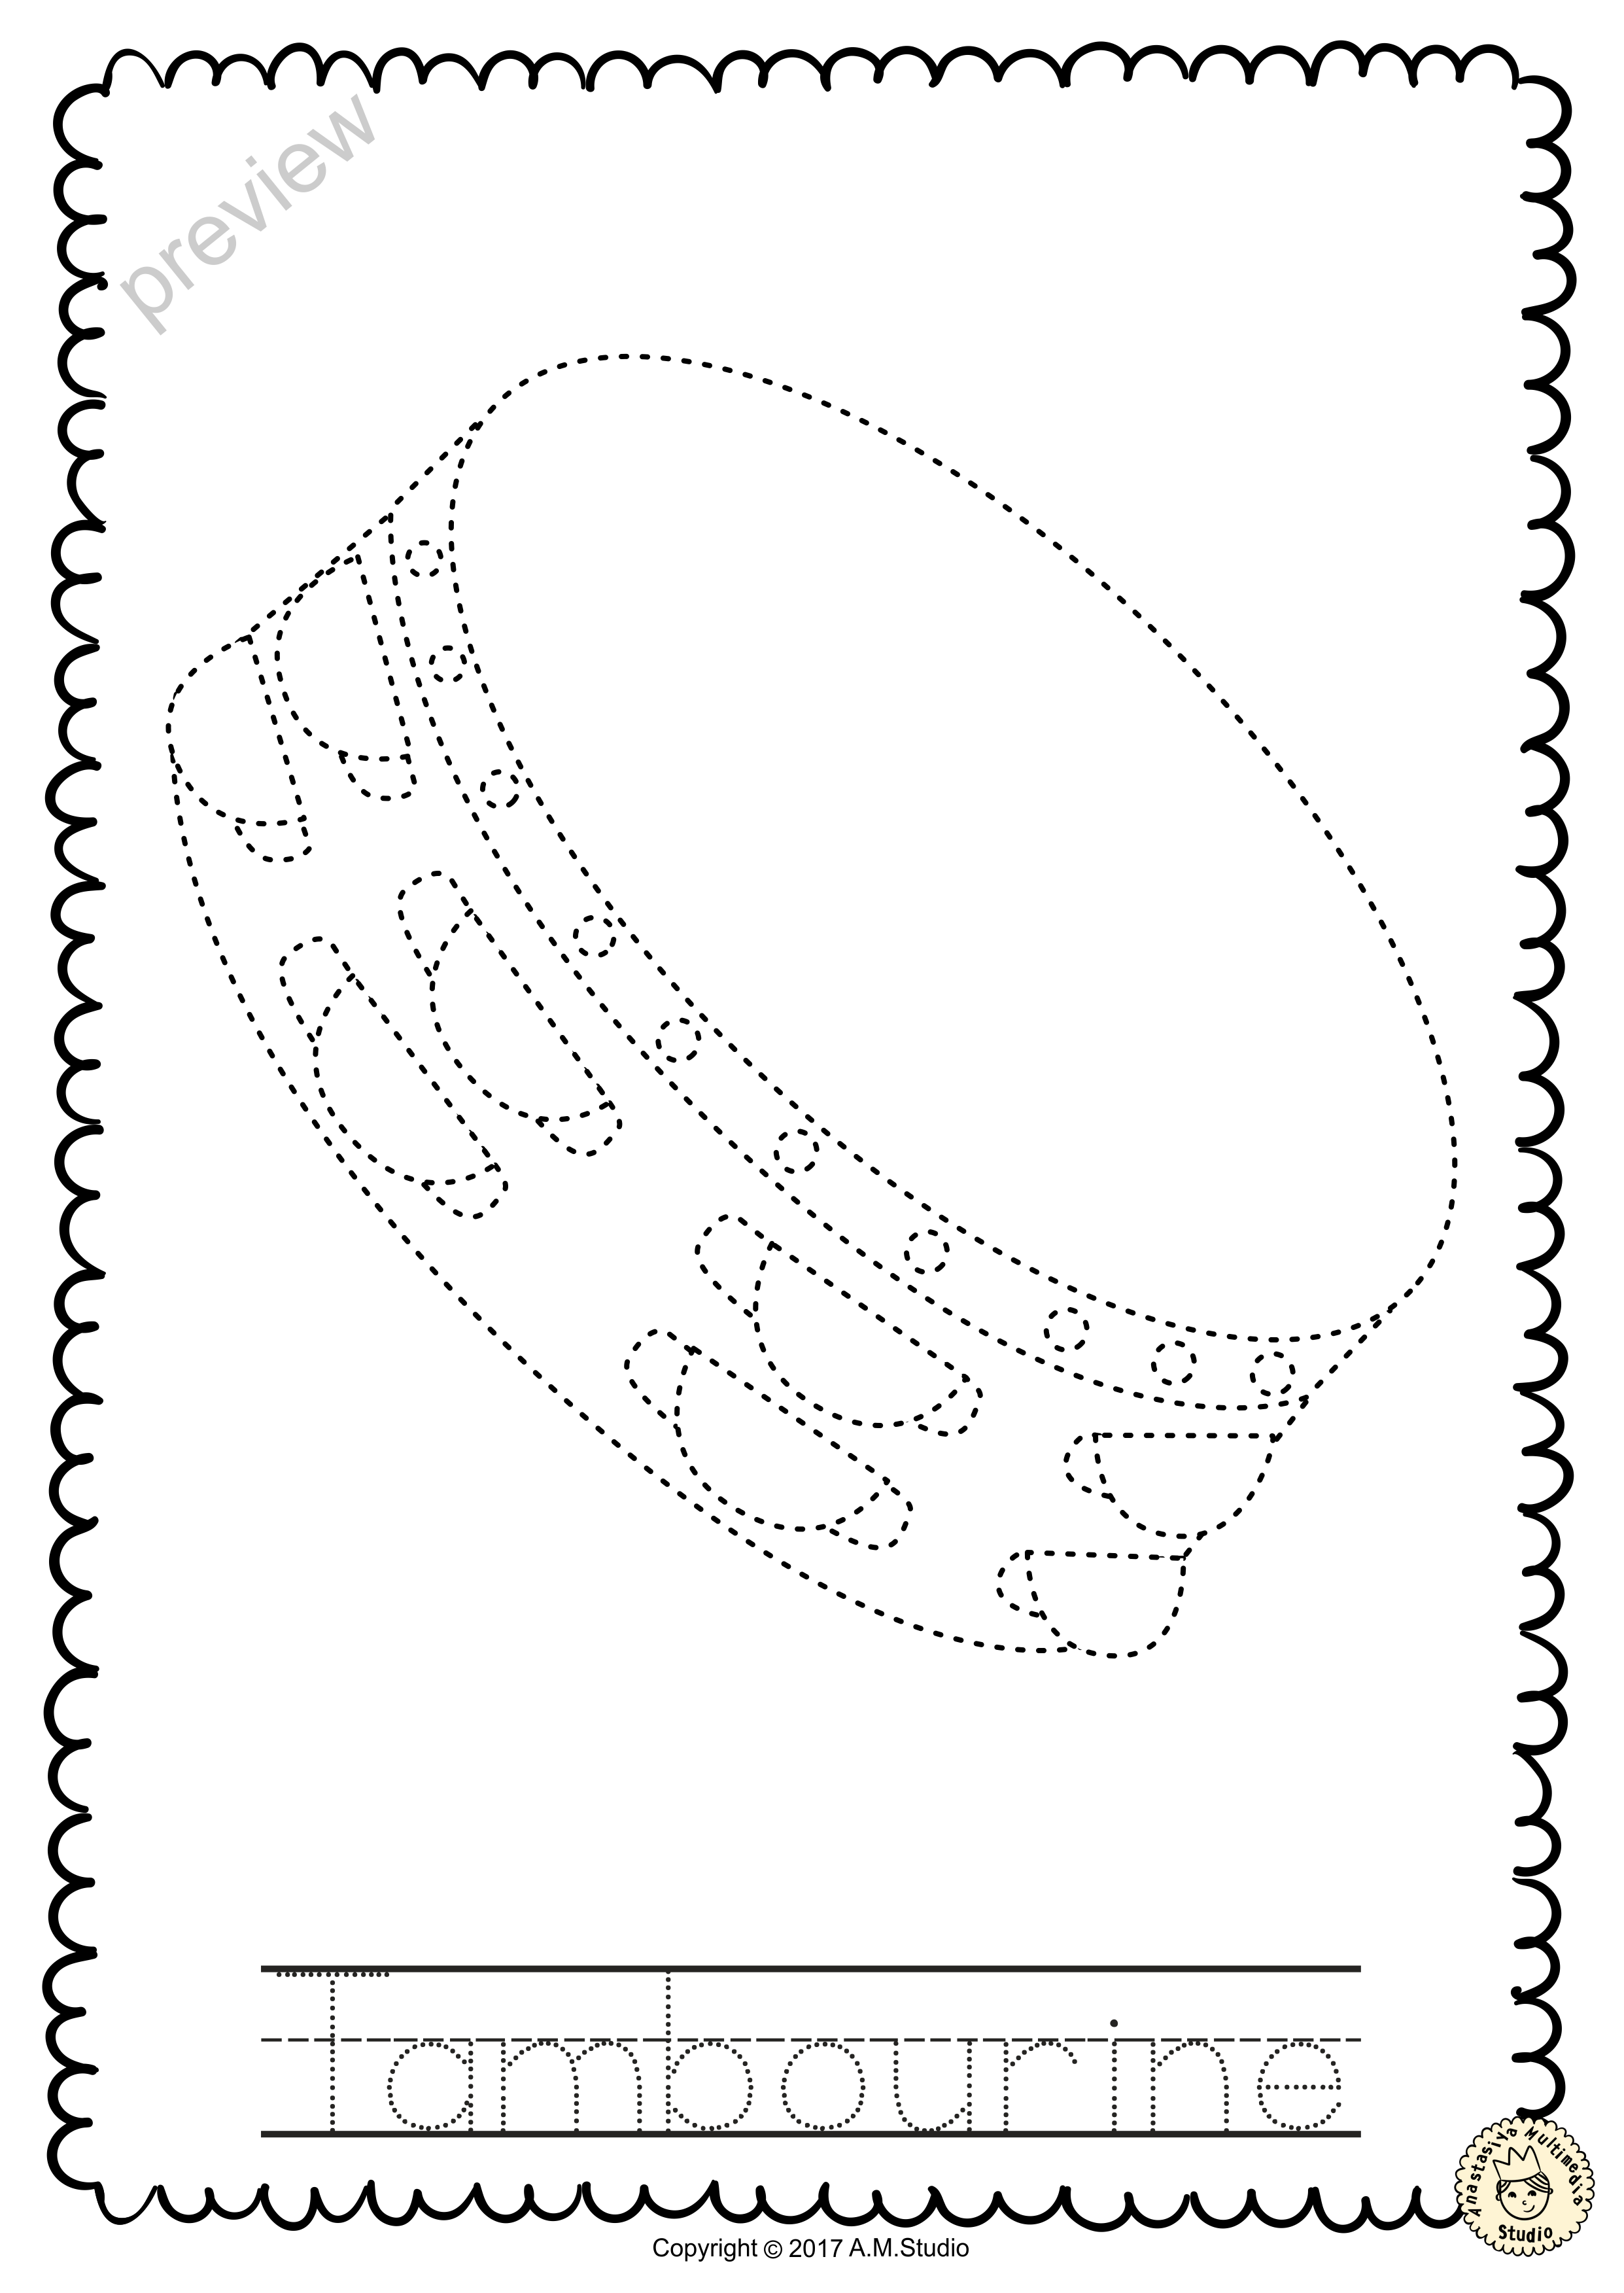 Percussion Instruments Trace And Color Pages With Images